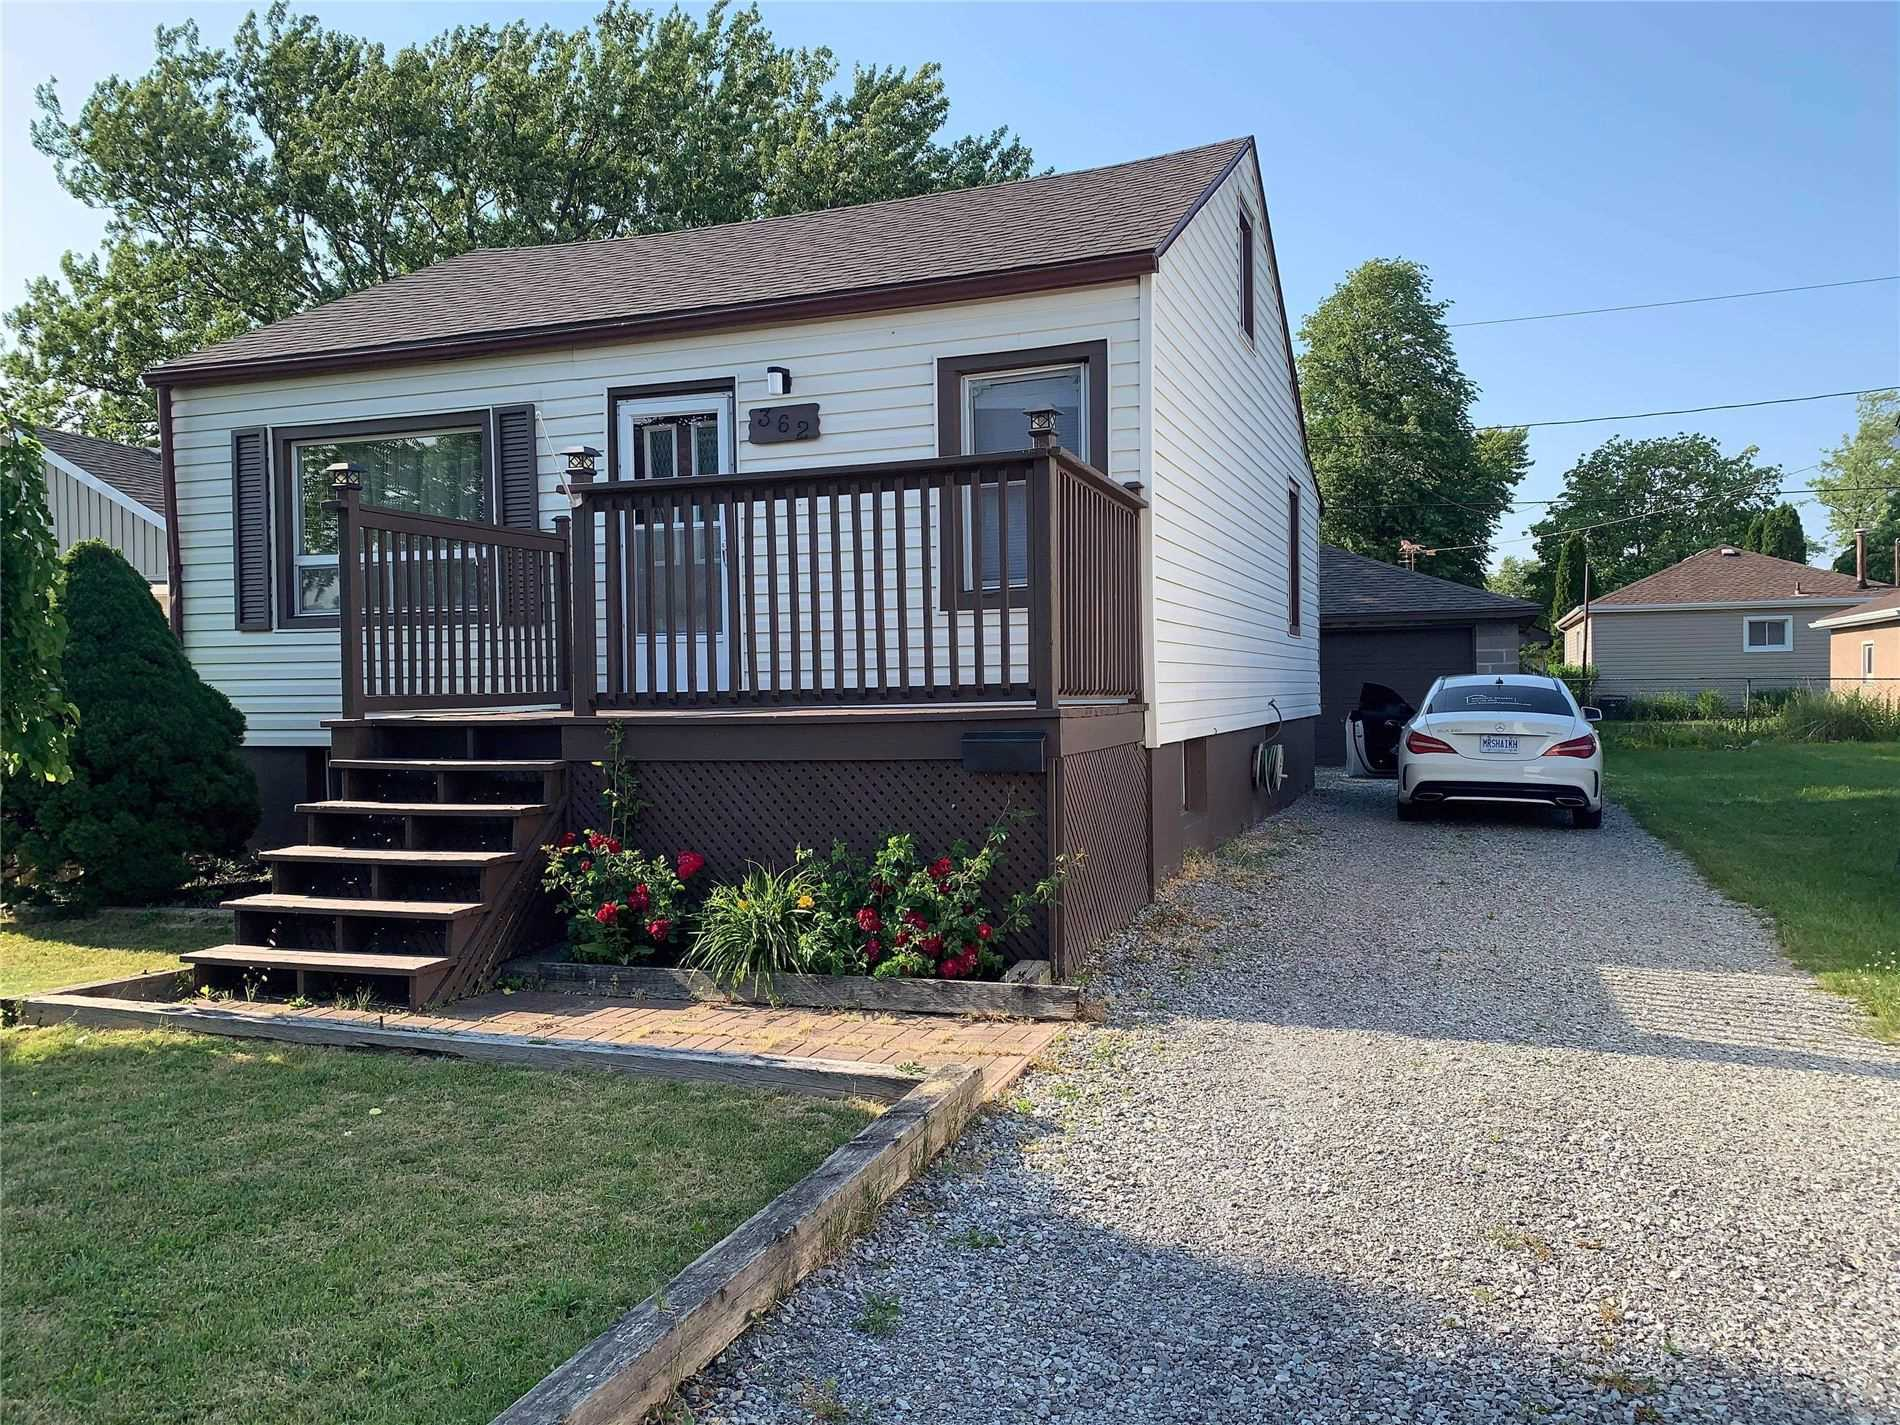 pictures of house for sale MLS: X5084744 located at 362 Morningstar Ave, Welland L3B5B4